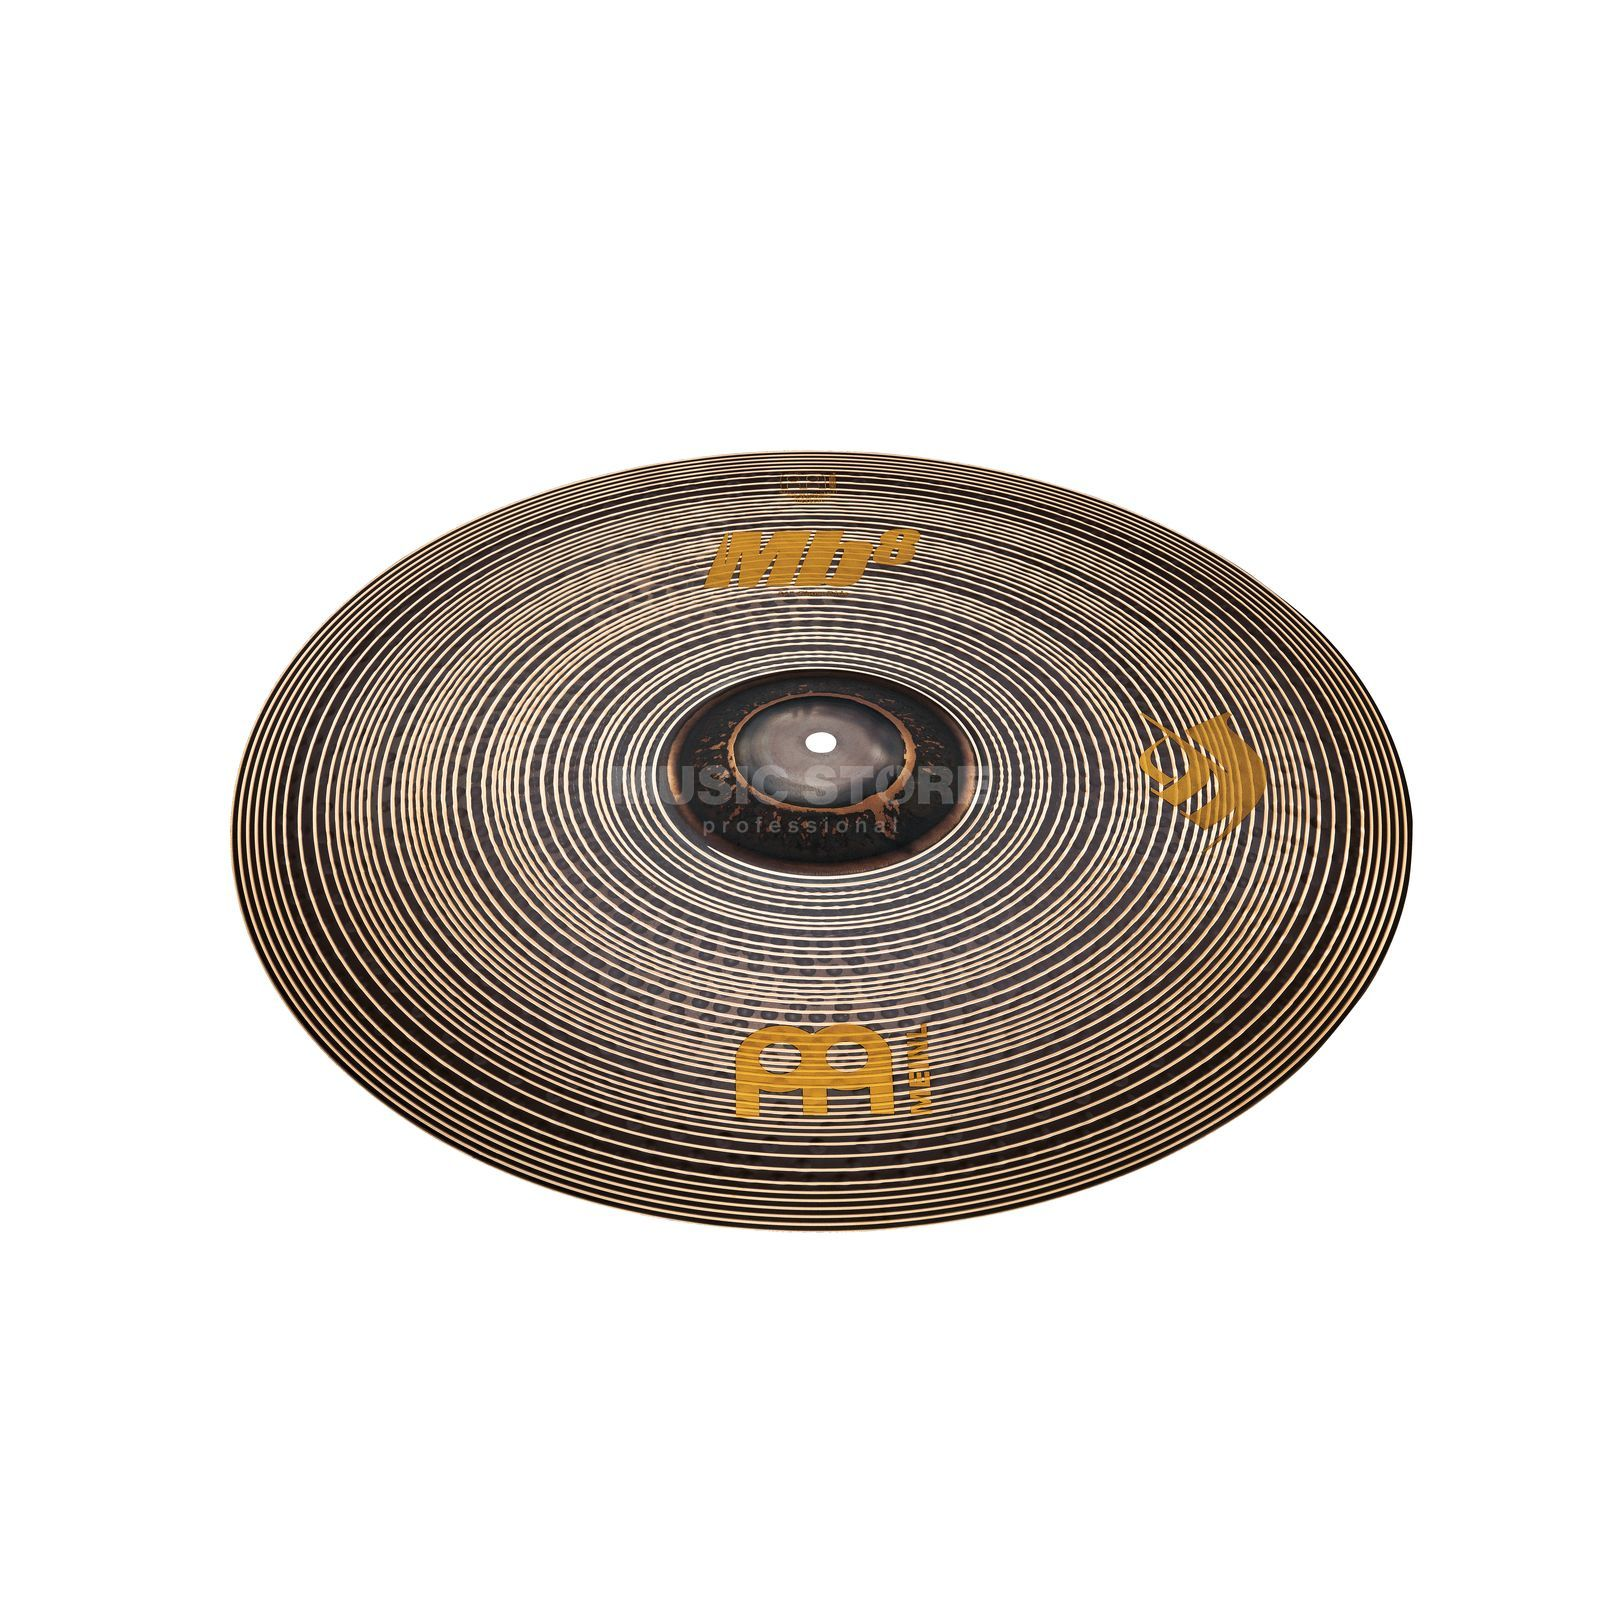 "Meinl MB8 Ghost Ride 21"", MB8-21GR Produktbild"